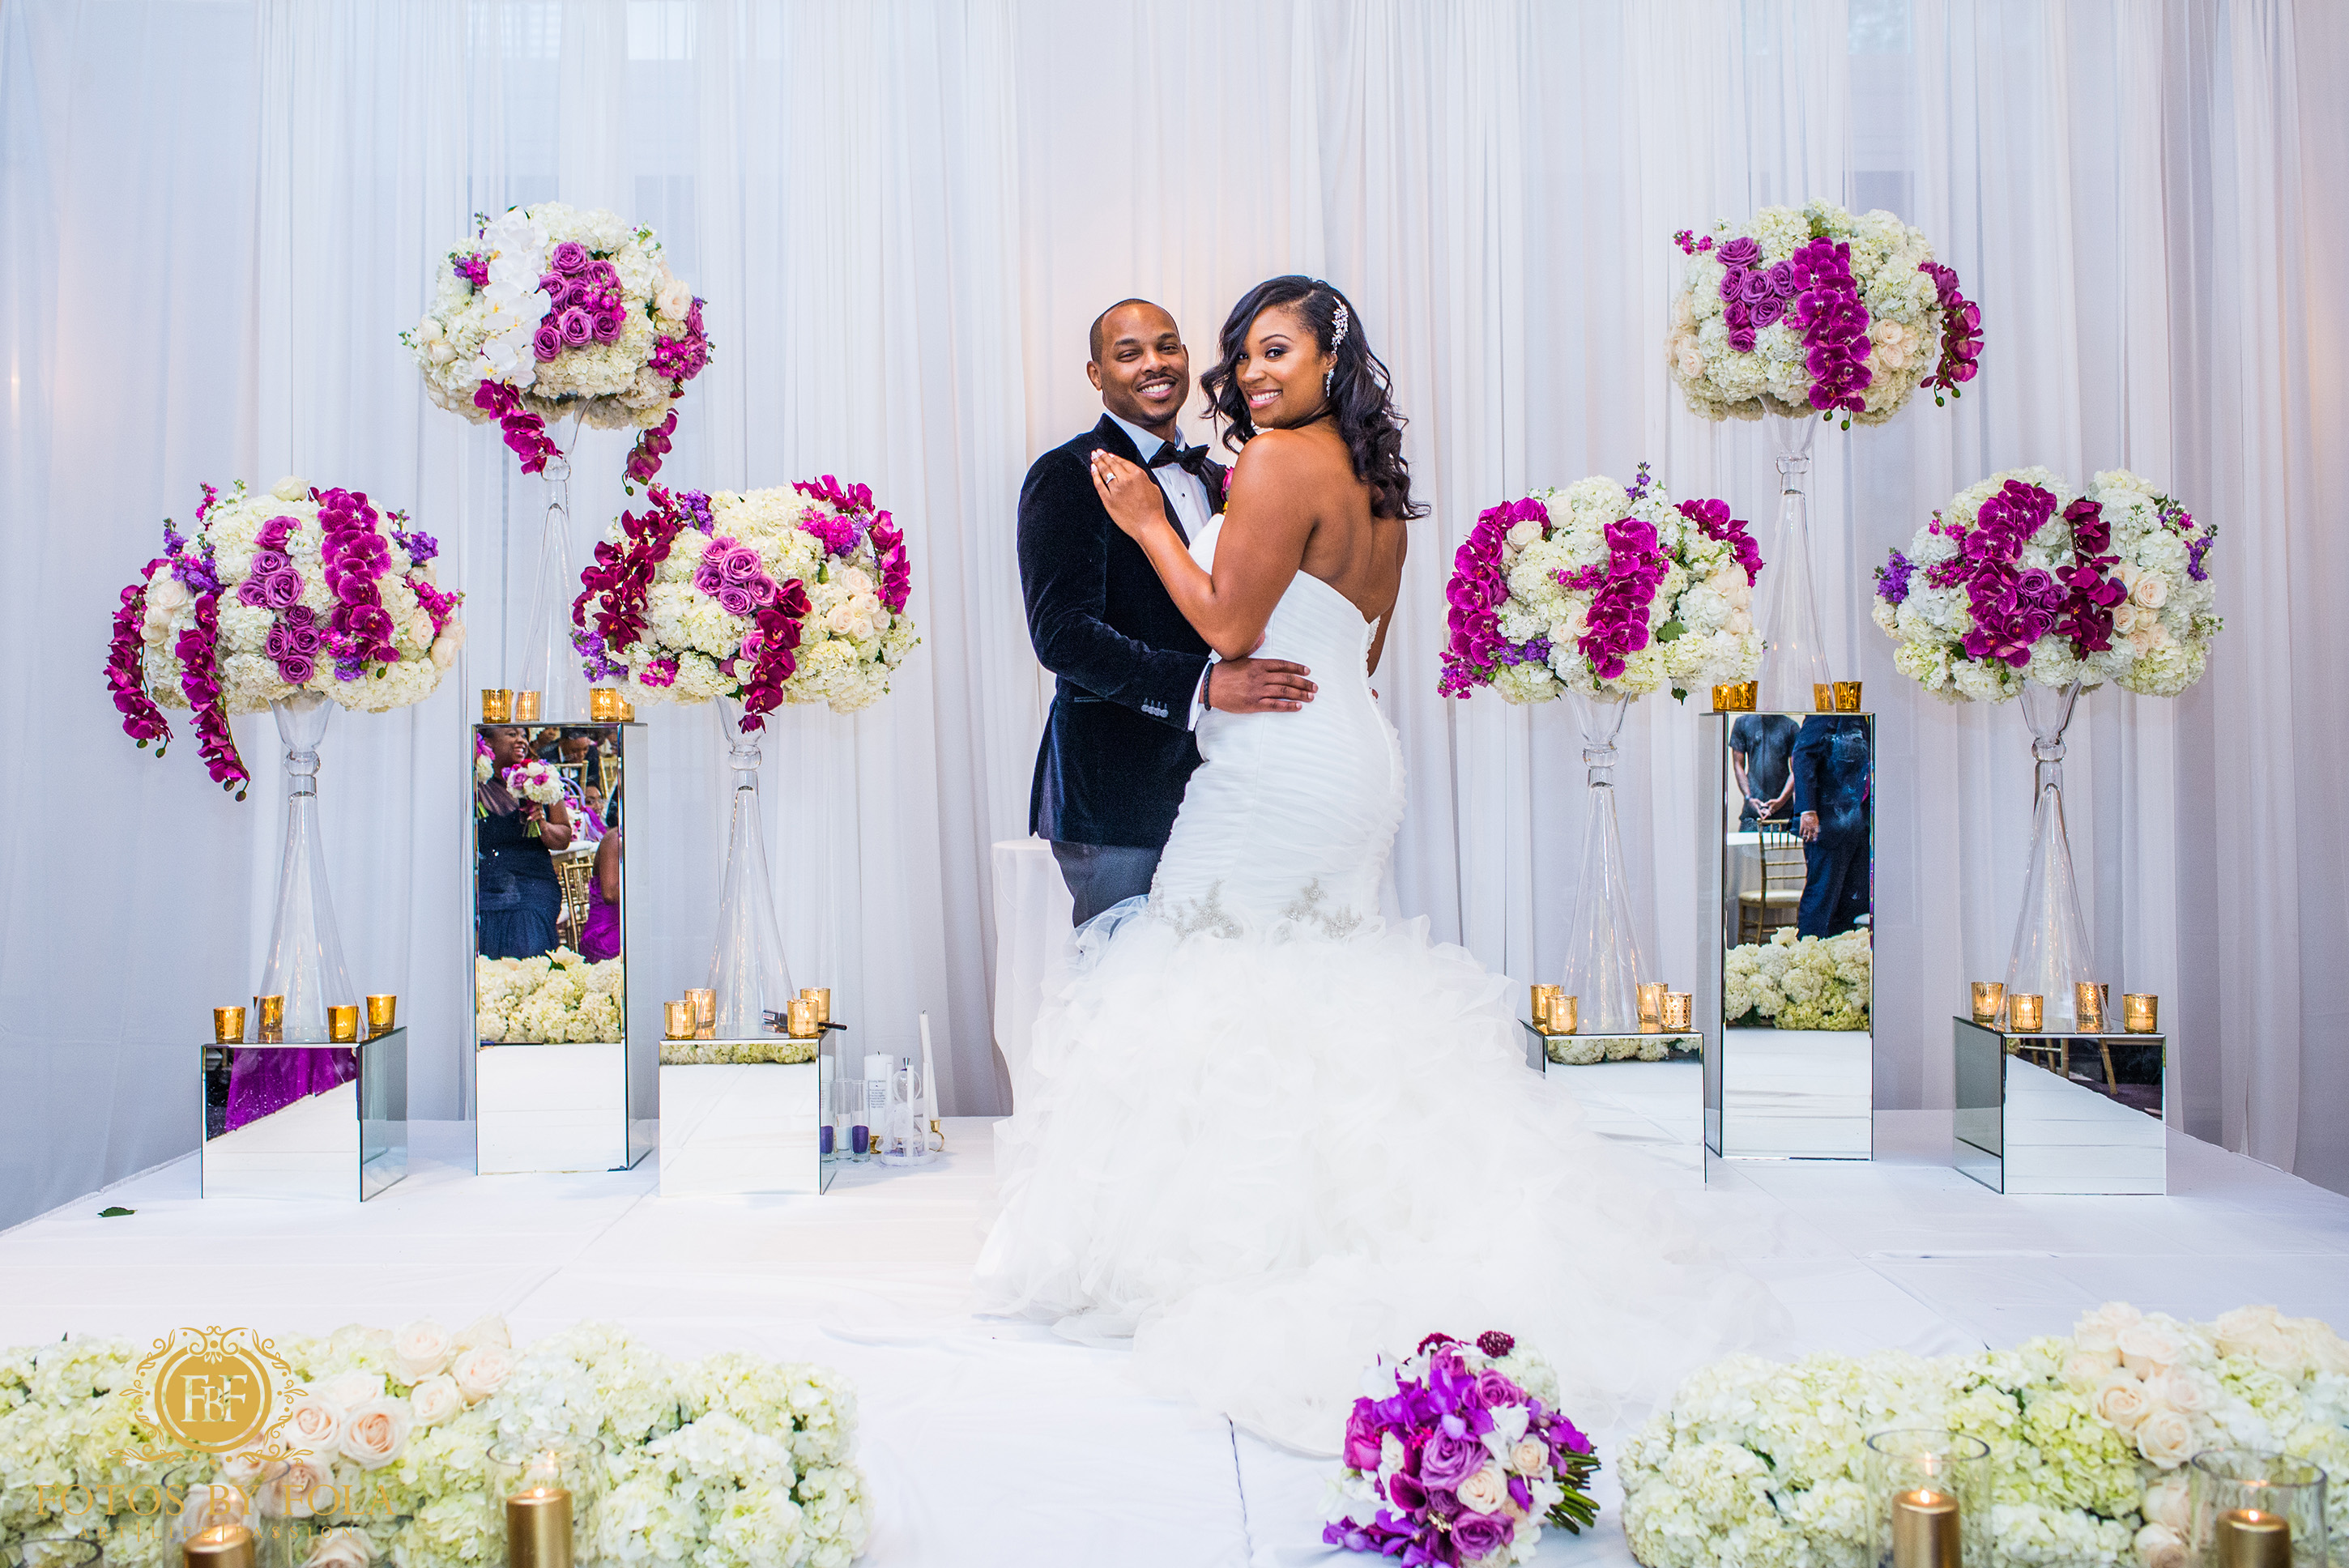 Fotos by Fola | Atlanta Wedding Photographer | Georgian Terrace Hotel Atlanta | Raven J Events